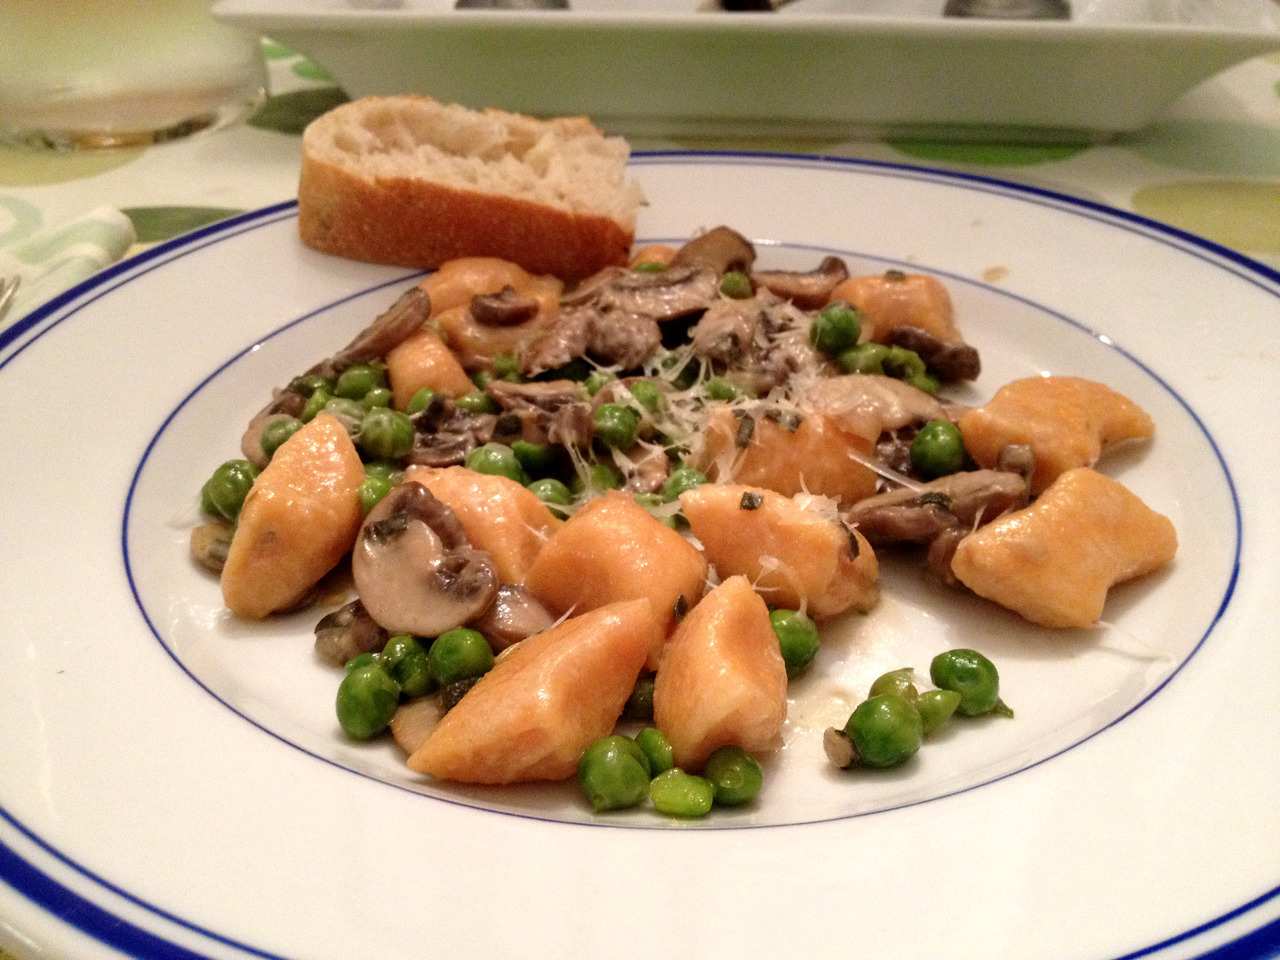 Sweet Potato Gnocchi with Mushroom, Sage Cream Sauce I completely forgot about this draft. It was a delicious recipe collaboration and possibly the best food photo I've taken with my meager photographer noob means. We made the sweet potato gnocchi from the first recipe and combined it to the sauce in the second + peas. It'd probably be a good idea to try the pumpkin gnocchi in the second recipe as well :} Anyways, it was scrumptious. The recipe for the gnocchi made tons, and they can be frozen, so I thought about making some sort of Moroccan sauce to add with them later on for an Italian and North African lovechild dish.